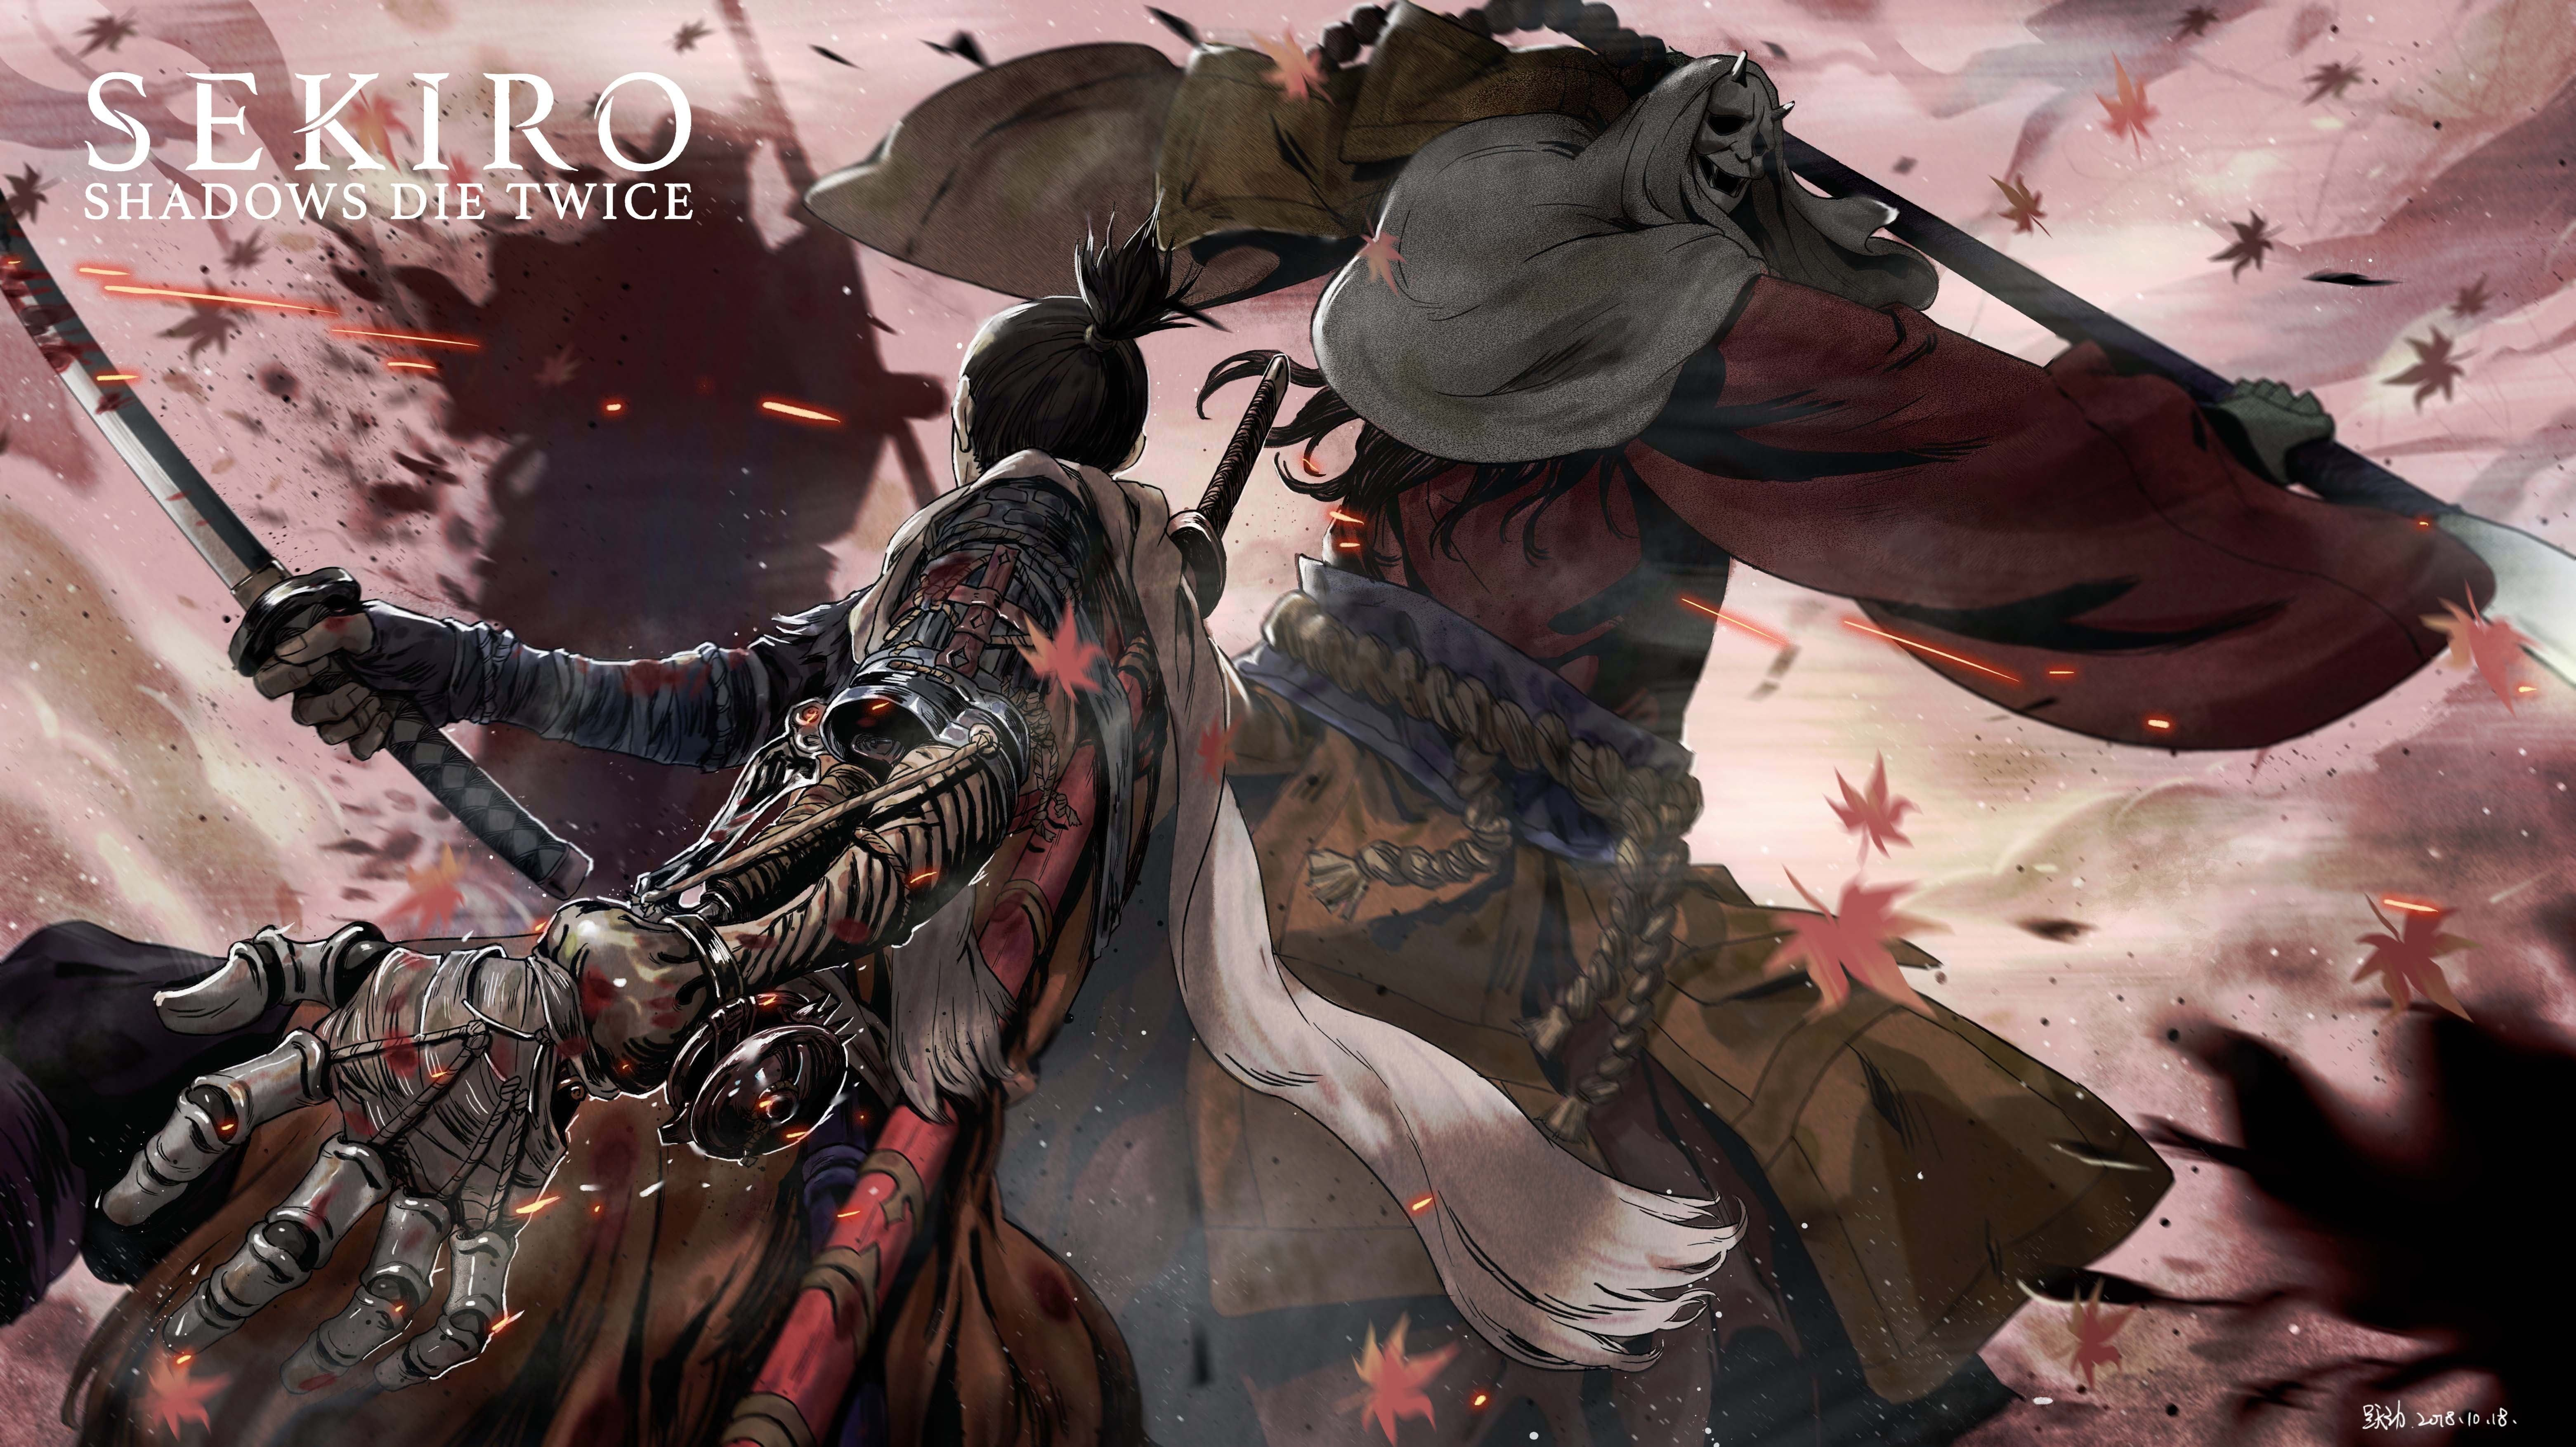 Video Games Video Game Art Sekiro Shadows Die Twice 5k Wallpaper Hdwallpaper Desktop Dark Souls Art Video Game Art Game Art